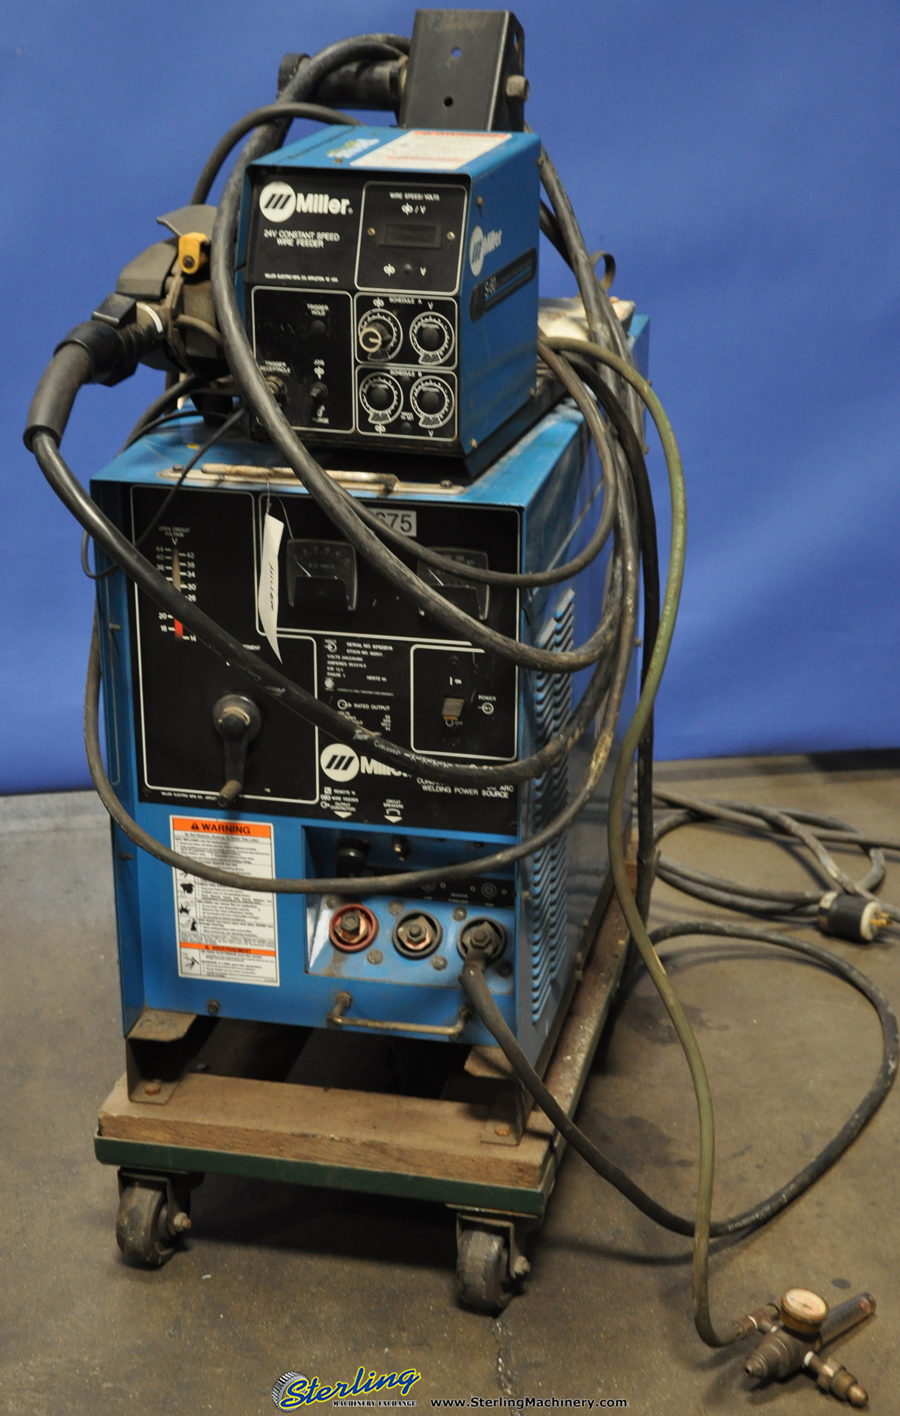 Cp300 Mig Welder Wiring Diagram Data Diagrams Century Model 20511 300 Amp Used Miller Mdl Cp 24v Wire Feeder Rh Blog Sterlingmachinery